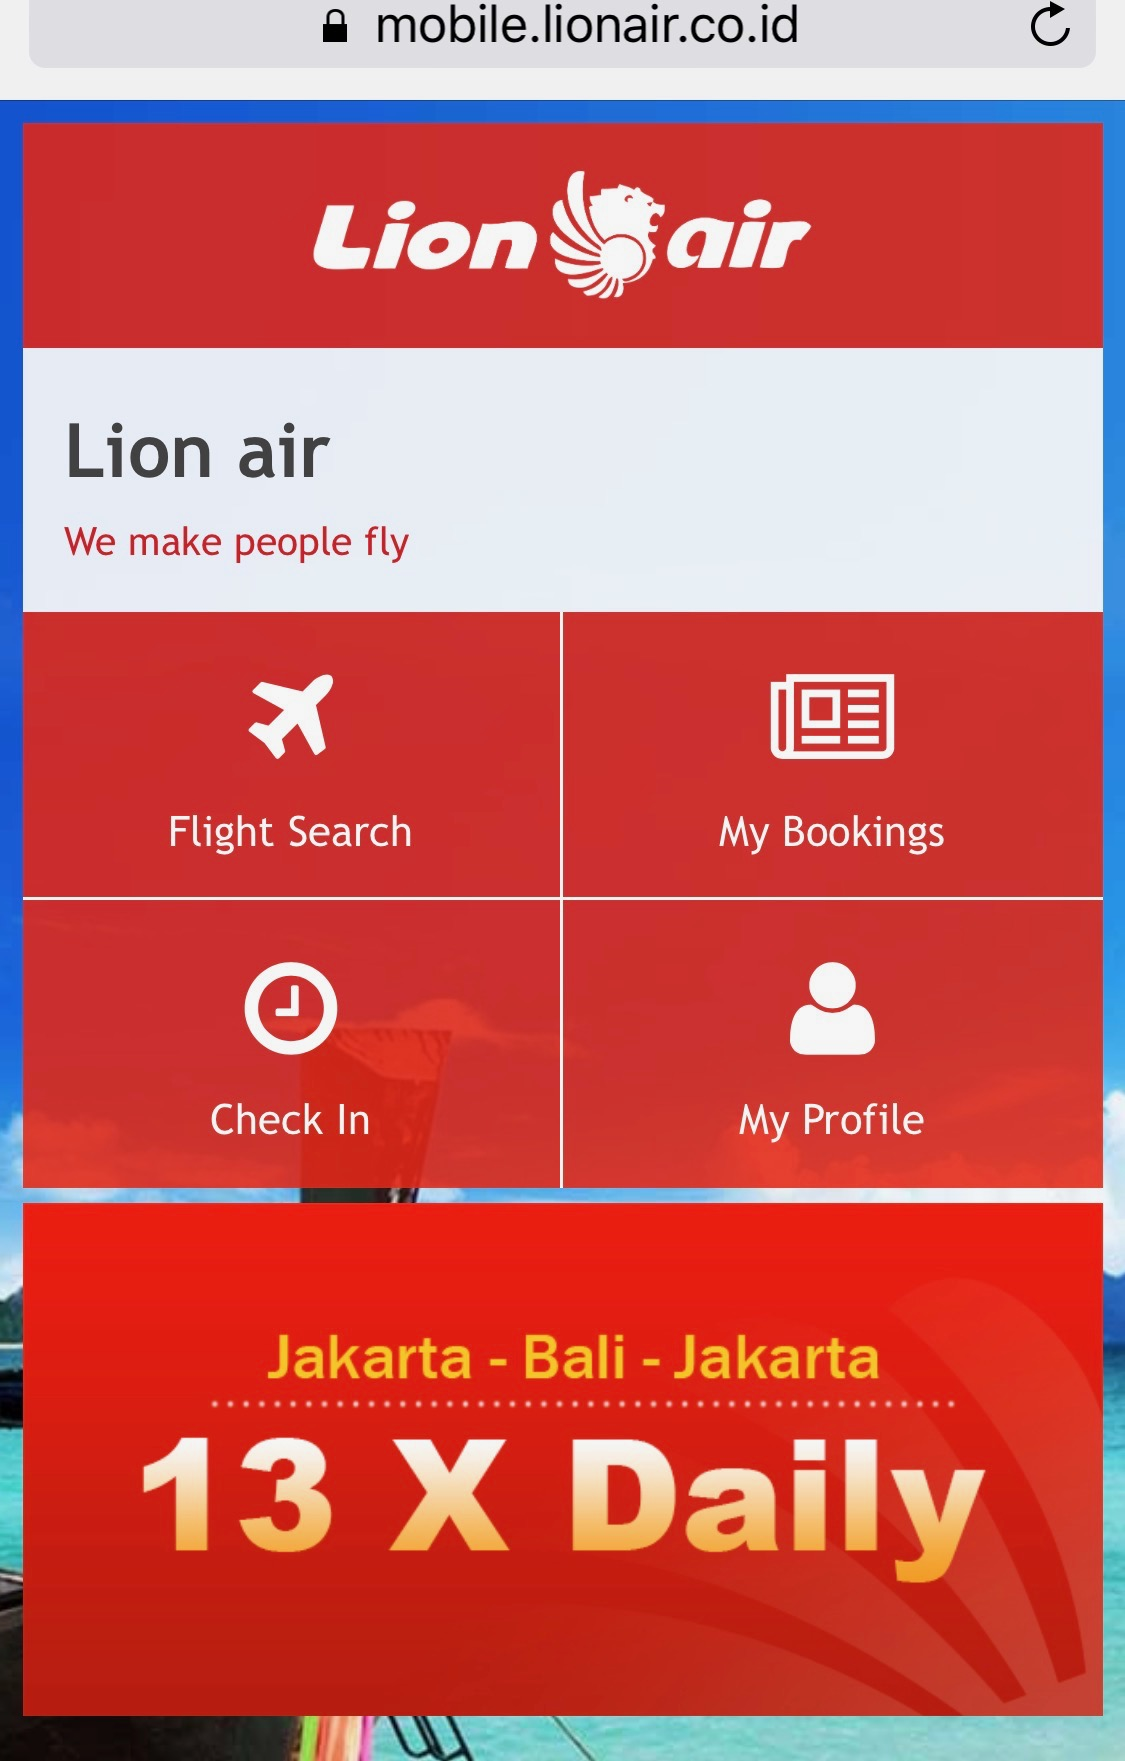 cara check in pesawat lion air skyscanner indonesia rh skyscanner co id  cara cek in lion air via website What Do Lions Do 380855aaf0